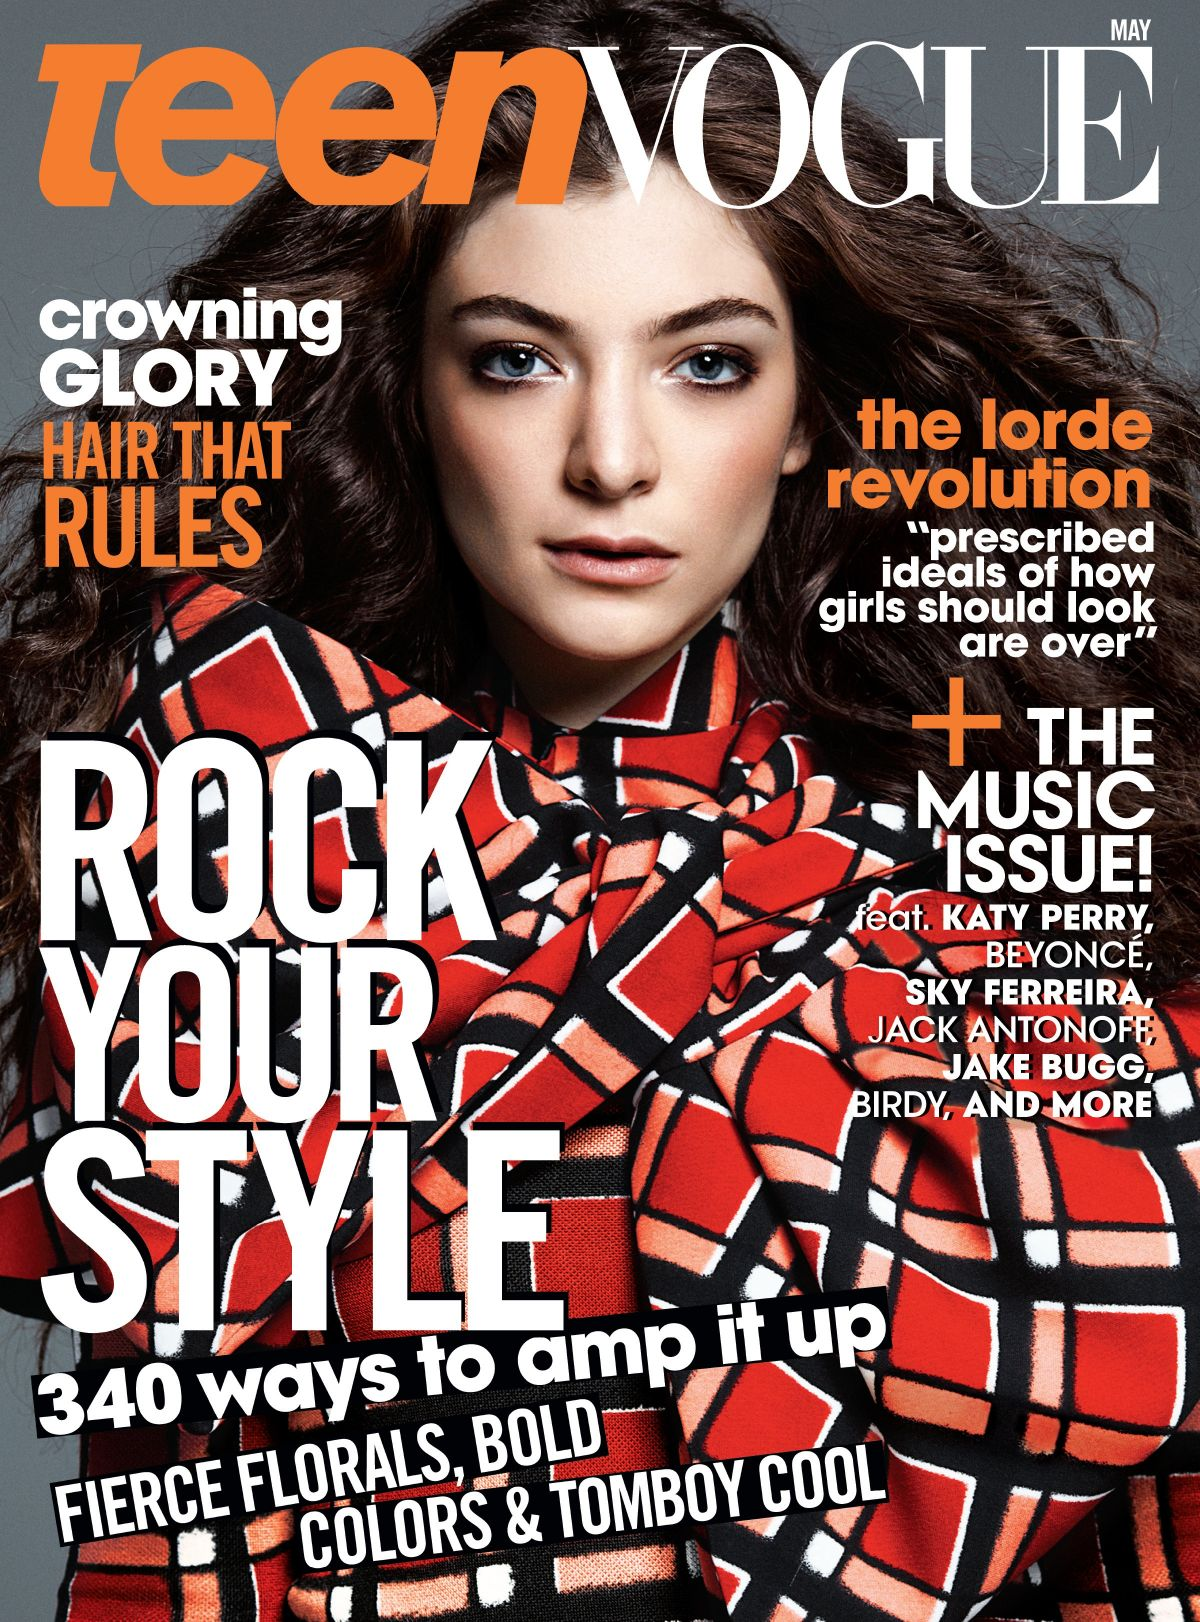 Teen Vogue Magazine Us March 2015 Cover: LORDE In Teen Vogue Magazine, May 2014 Issue